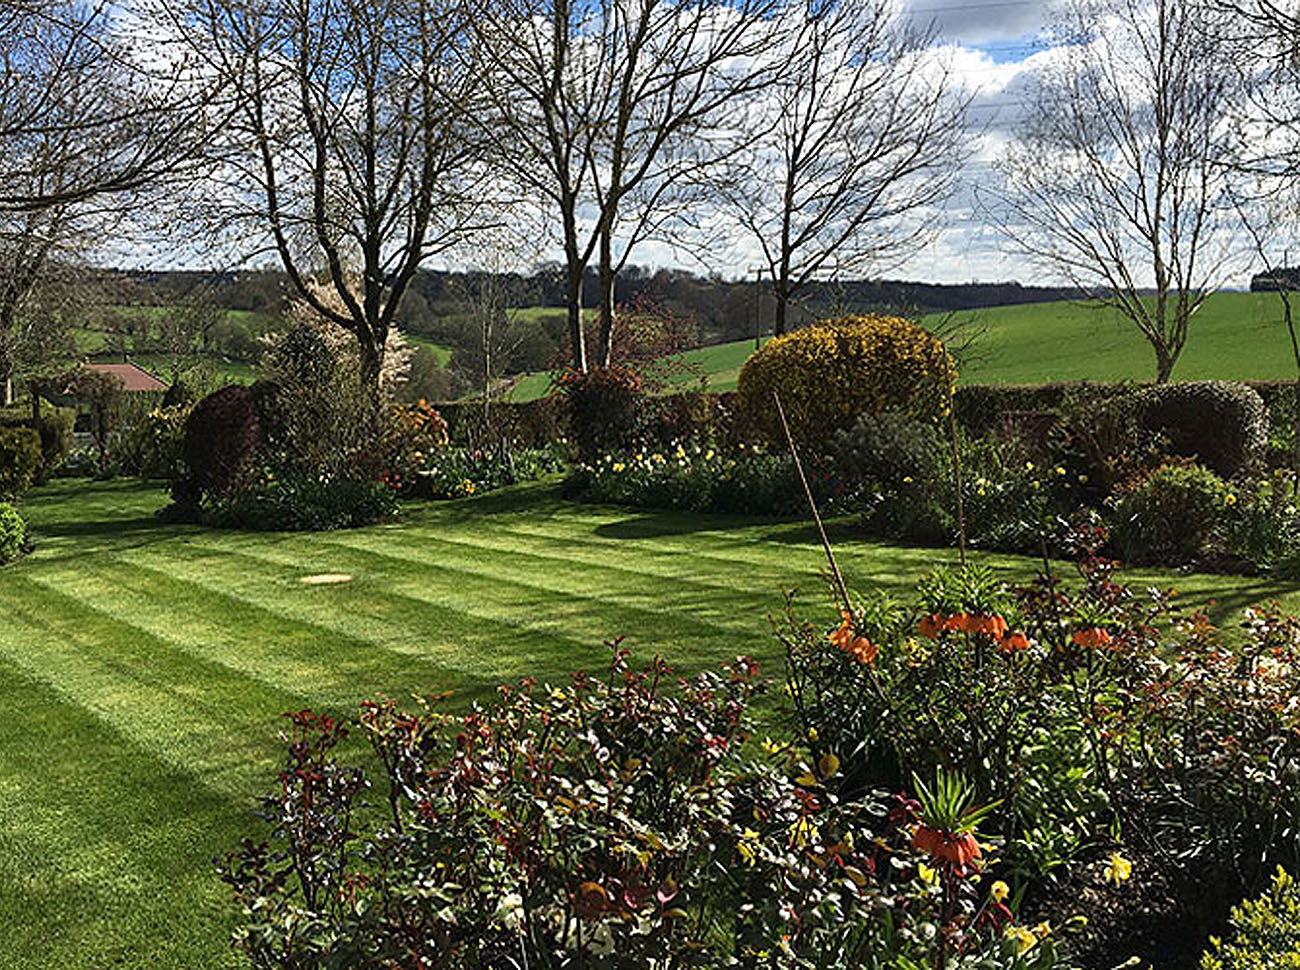 Allwinds Ground Maintenace provide commercial and residential garden services in Hertfordshire covering Harpenden, Hemel Hempstead, Hitchin, Welwyn Garden City, St Albans